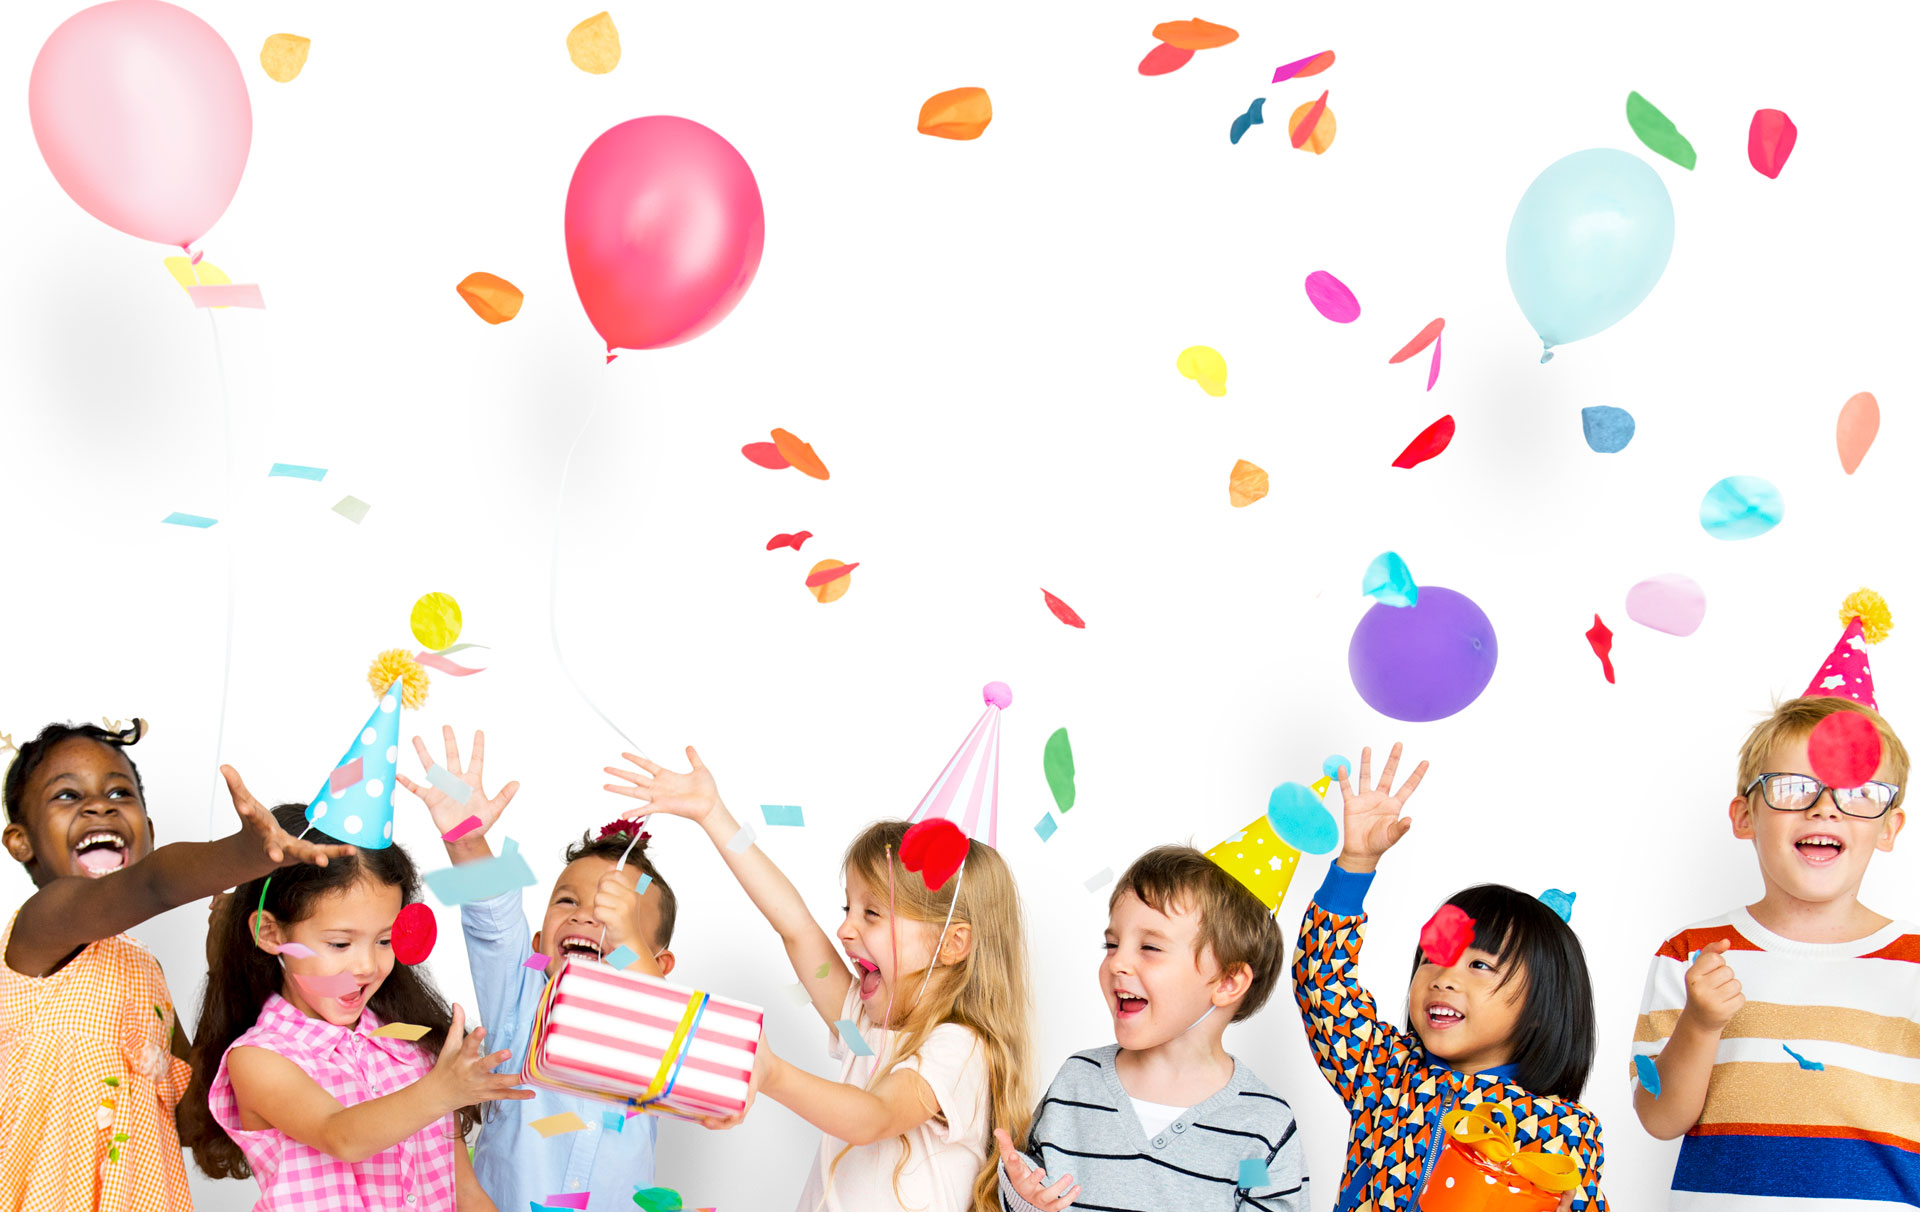 Kids Party Entertainment Ideas Every Parent Needs To Know